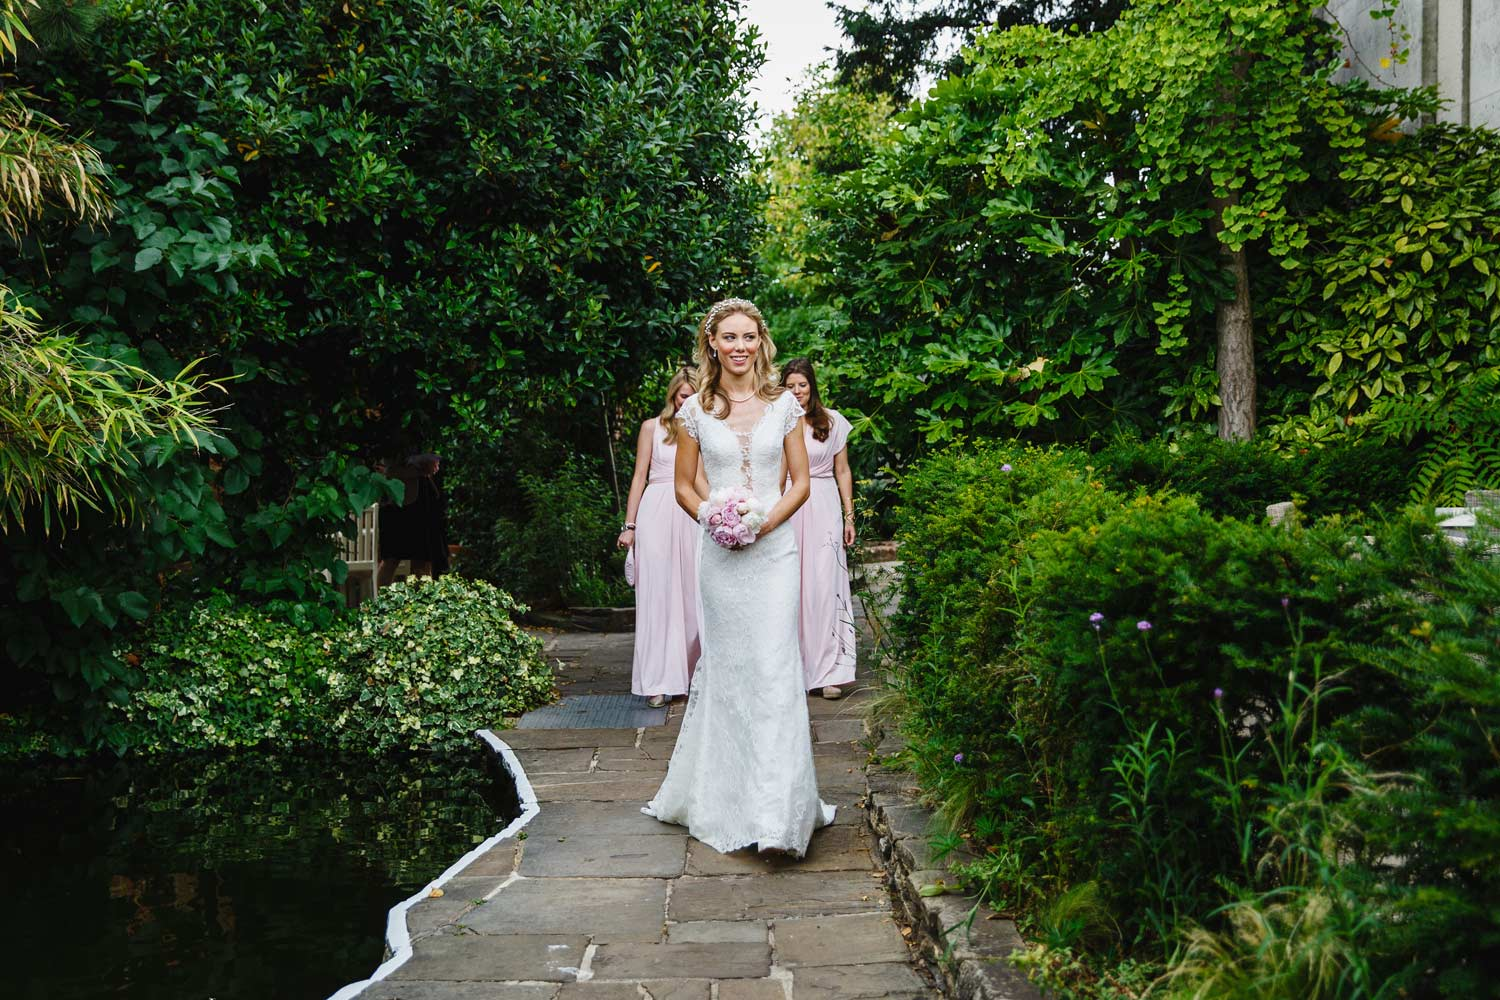 A bride prepares to walk to the ceremony at the Roof Gardens in Kensington - London wedding photographer